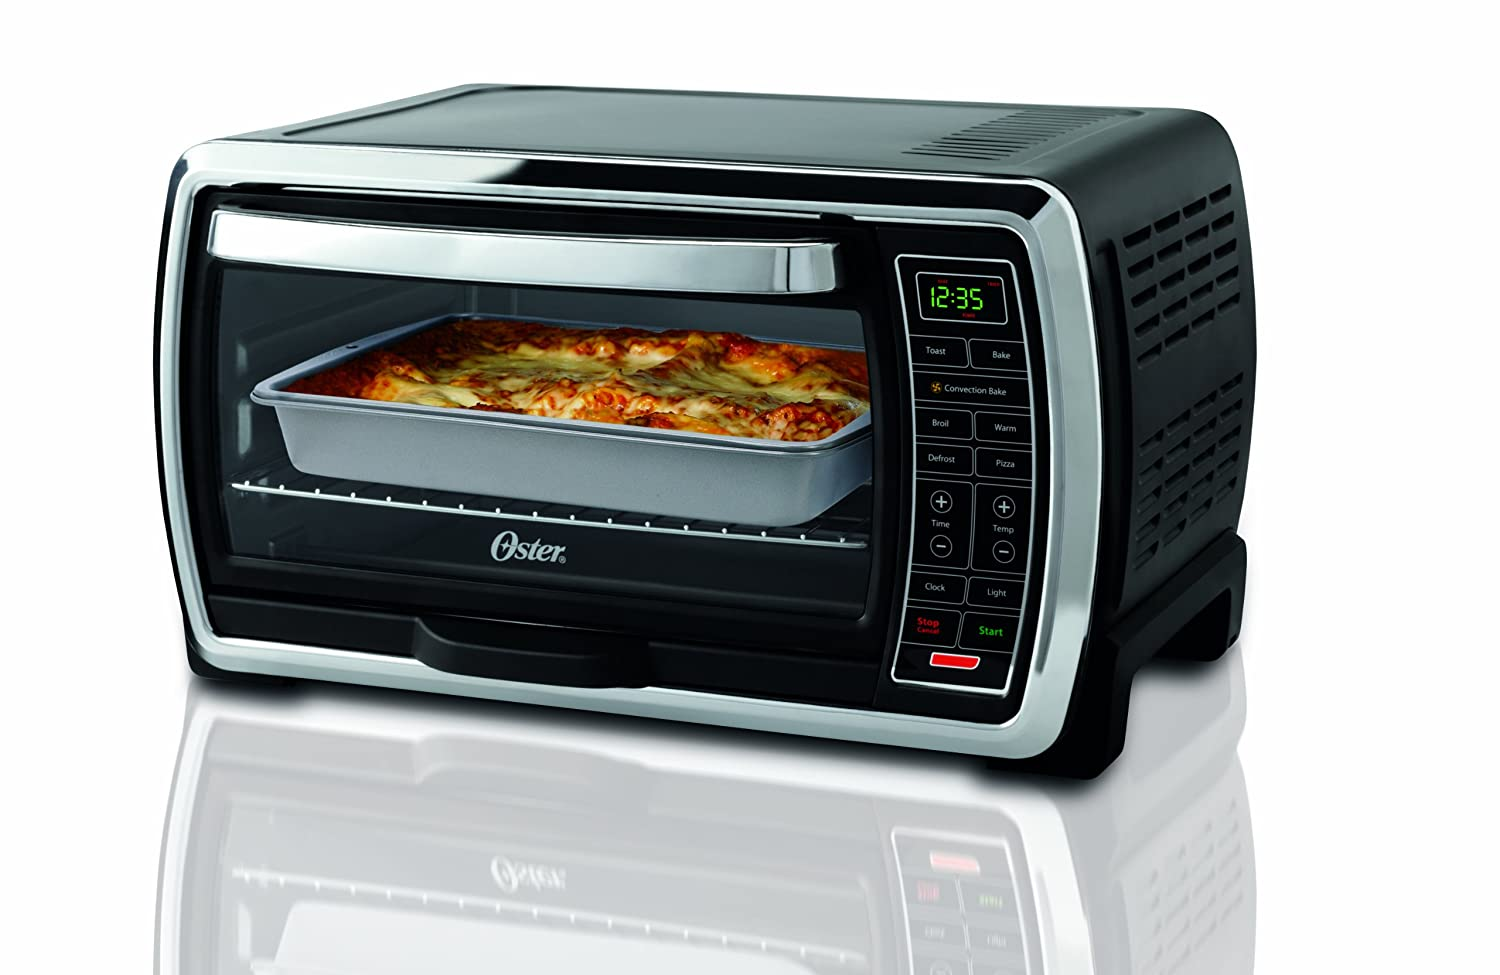 Countertop Convection Toaster Oven Recipes : Oster Lg Capacity Countertop 6-Slice Digital Convection Toaster Oven ...